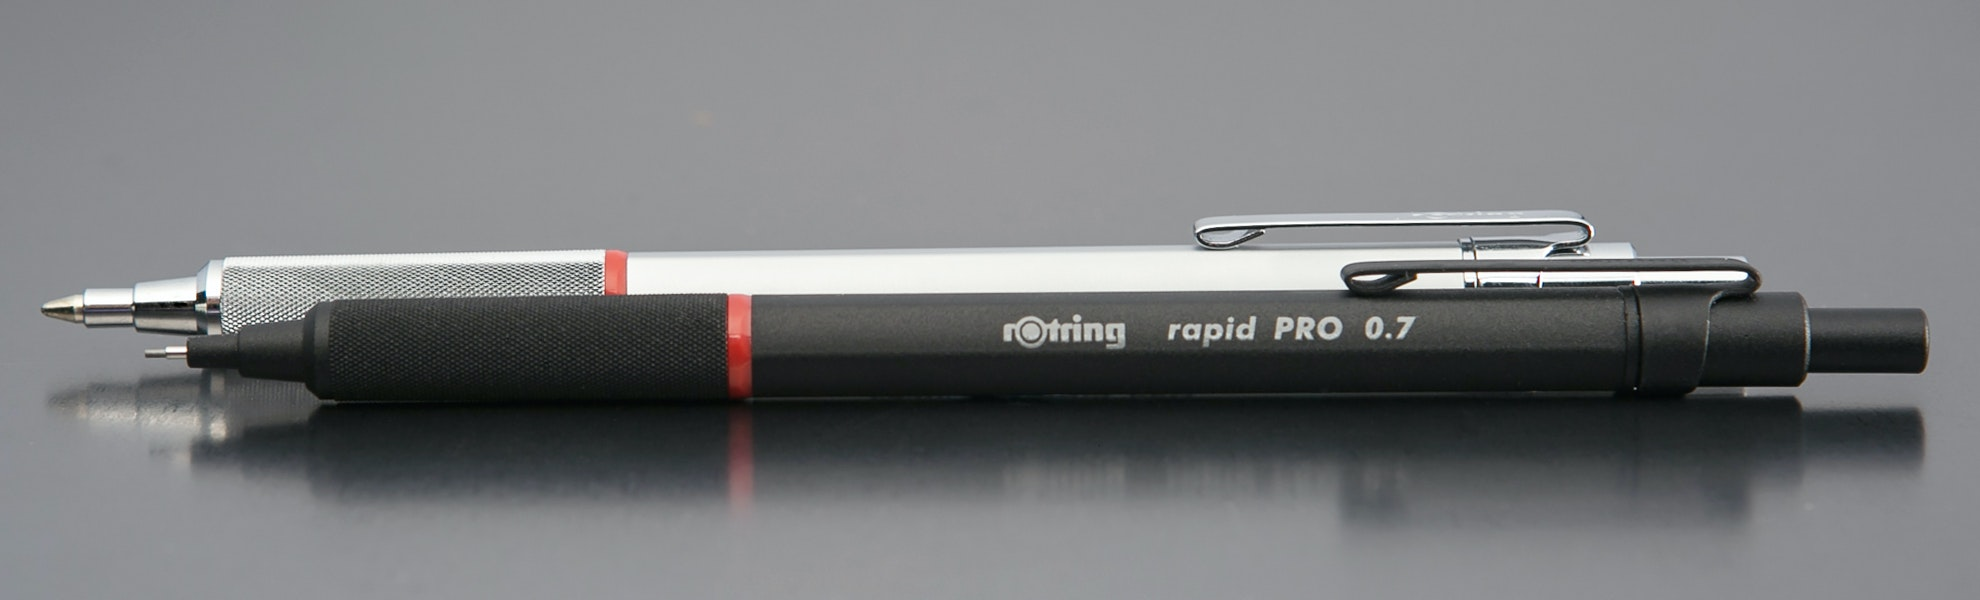 rOtring Rapid Pro Bundle: Pen & Pencil Set